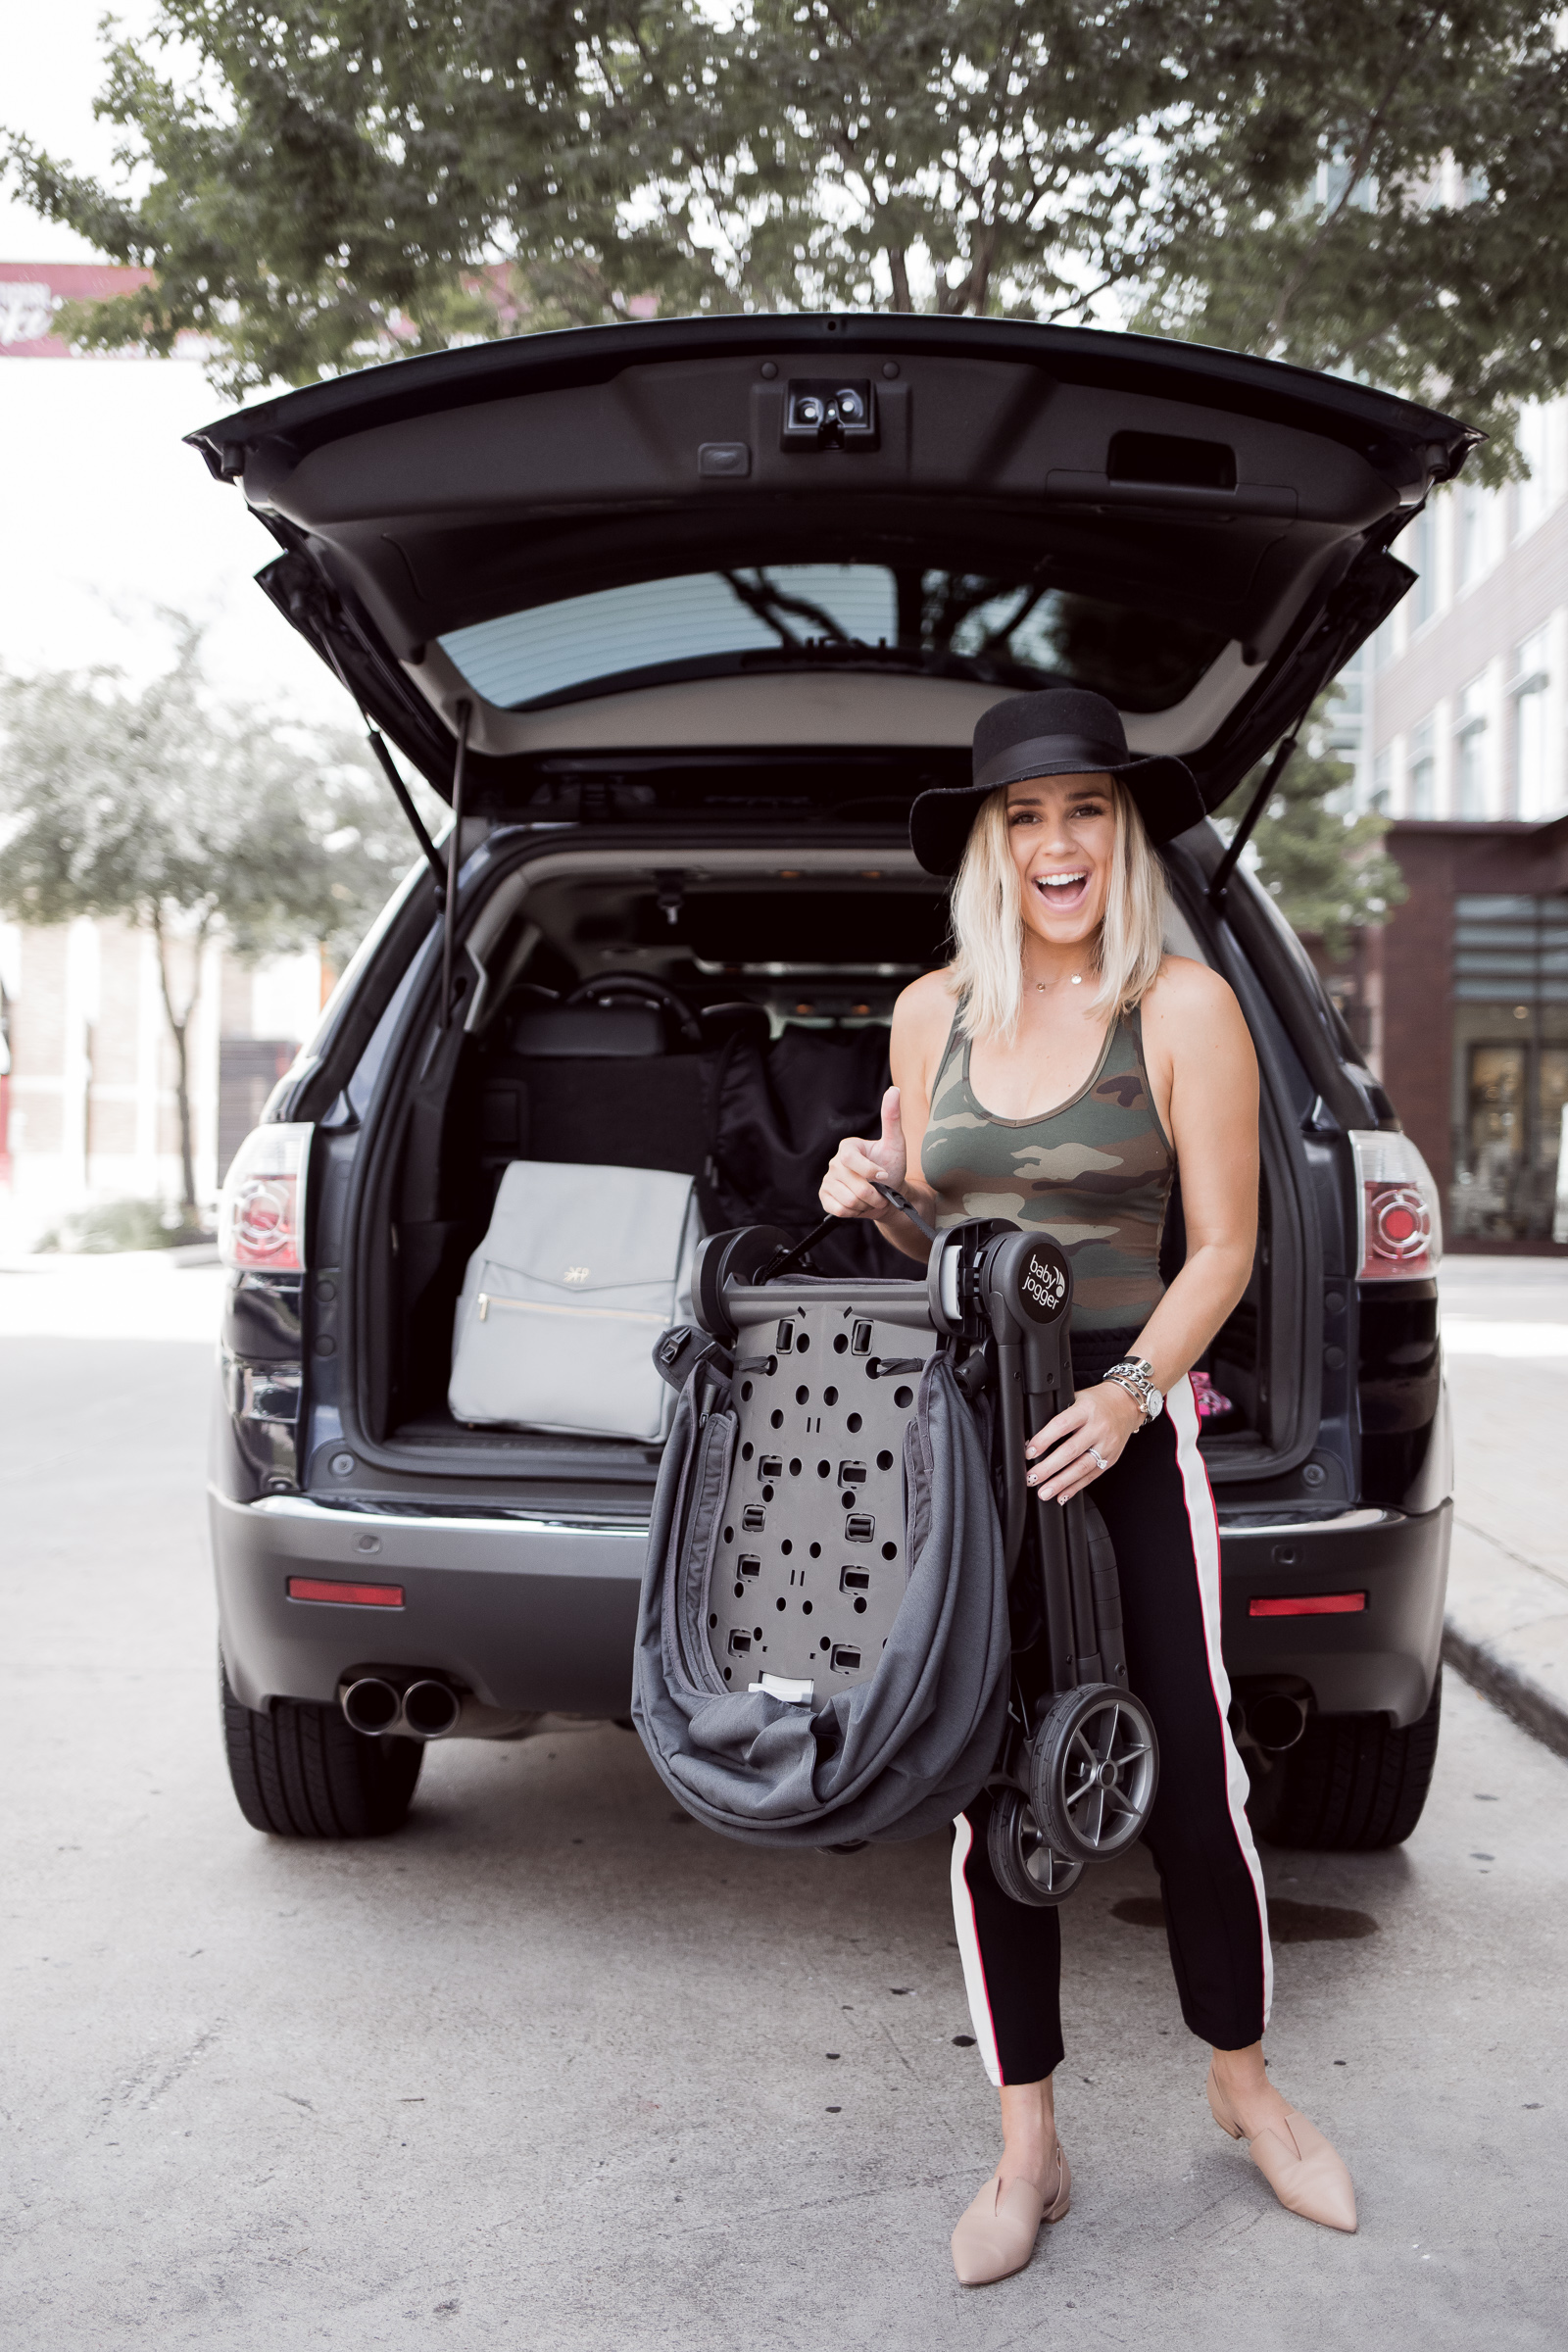 Houston lifestyle blogger Uptown with Elly Brown shares her review on the Baby Jogger® City Tour™ LUX stroller and why it's great for families on the go!